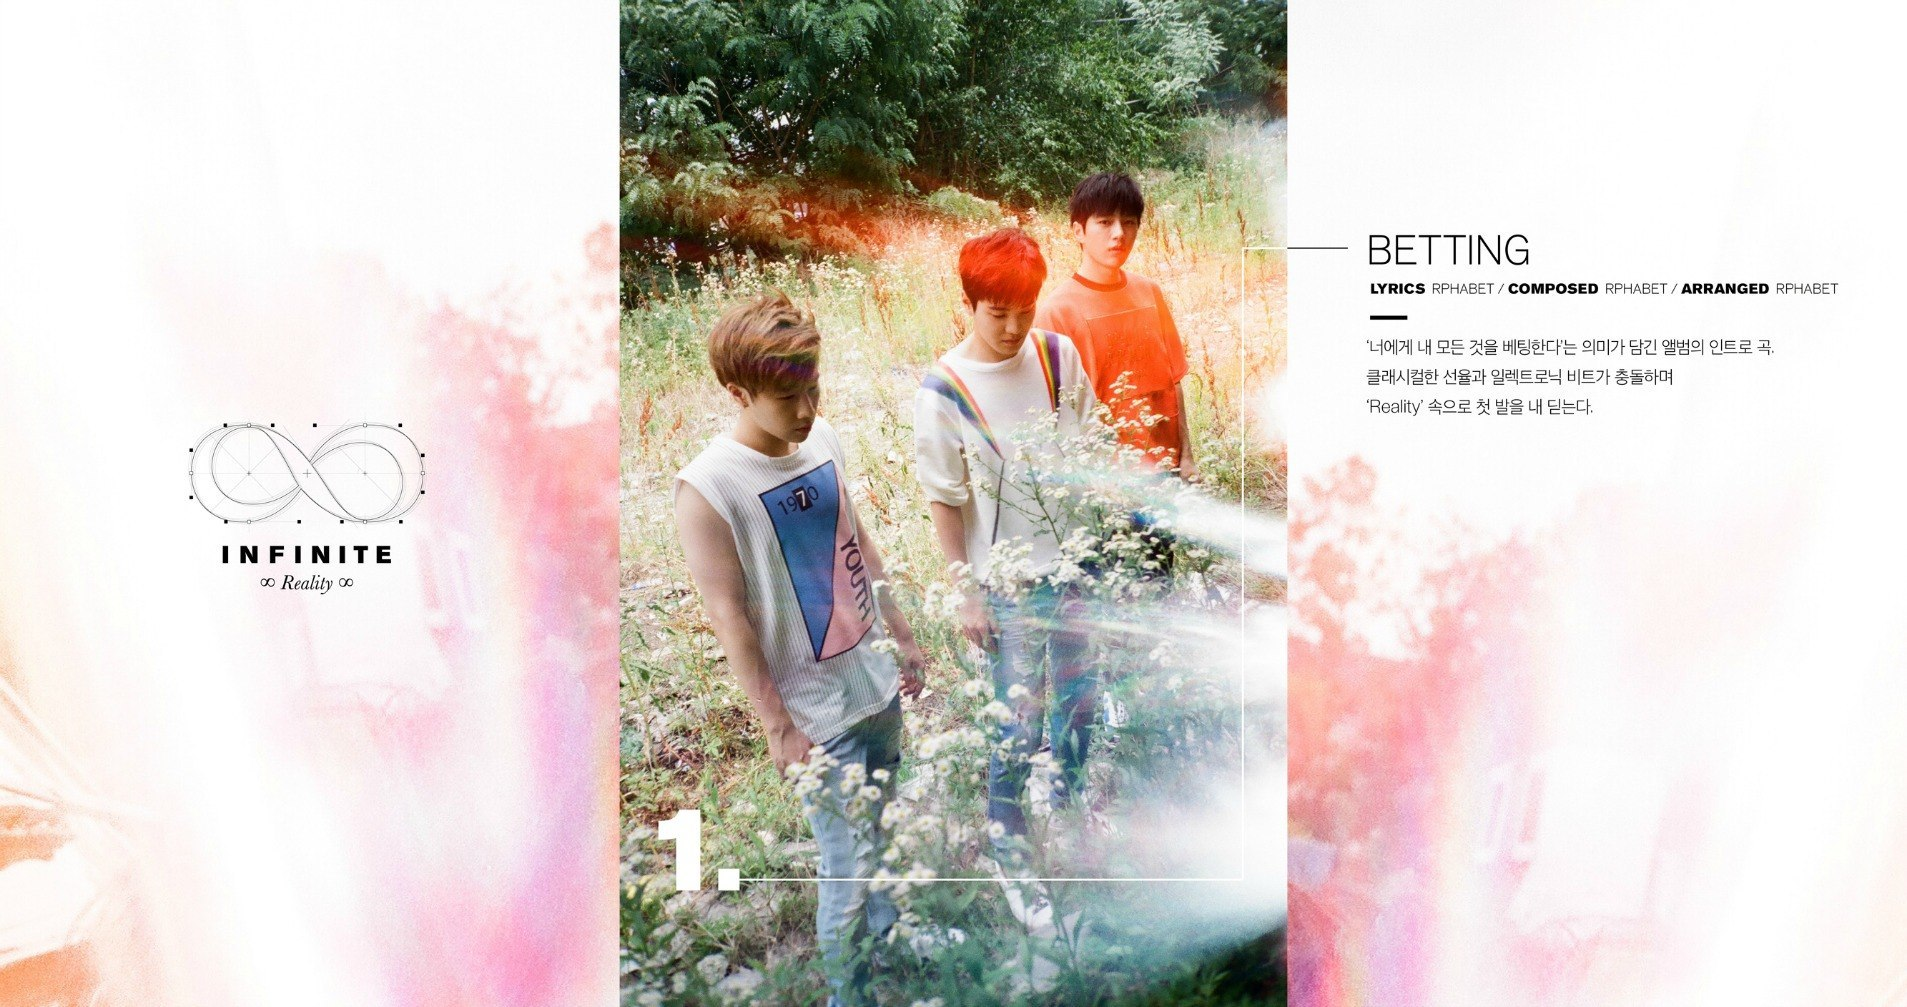 After INFINITE officially released the first image teaser for their